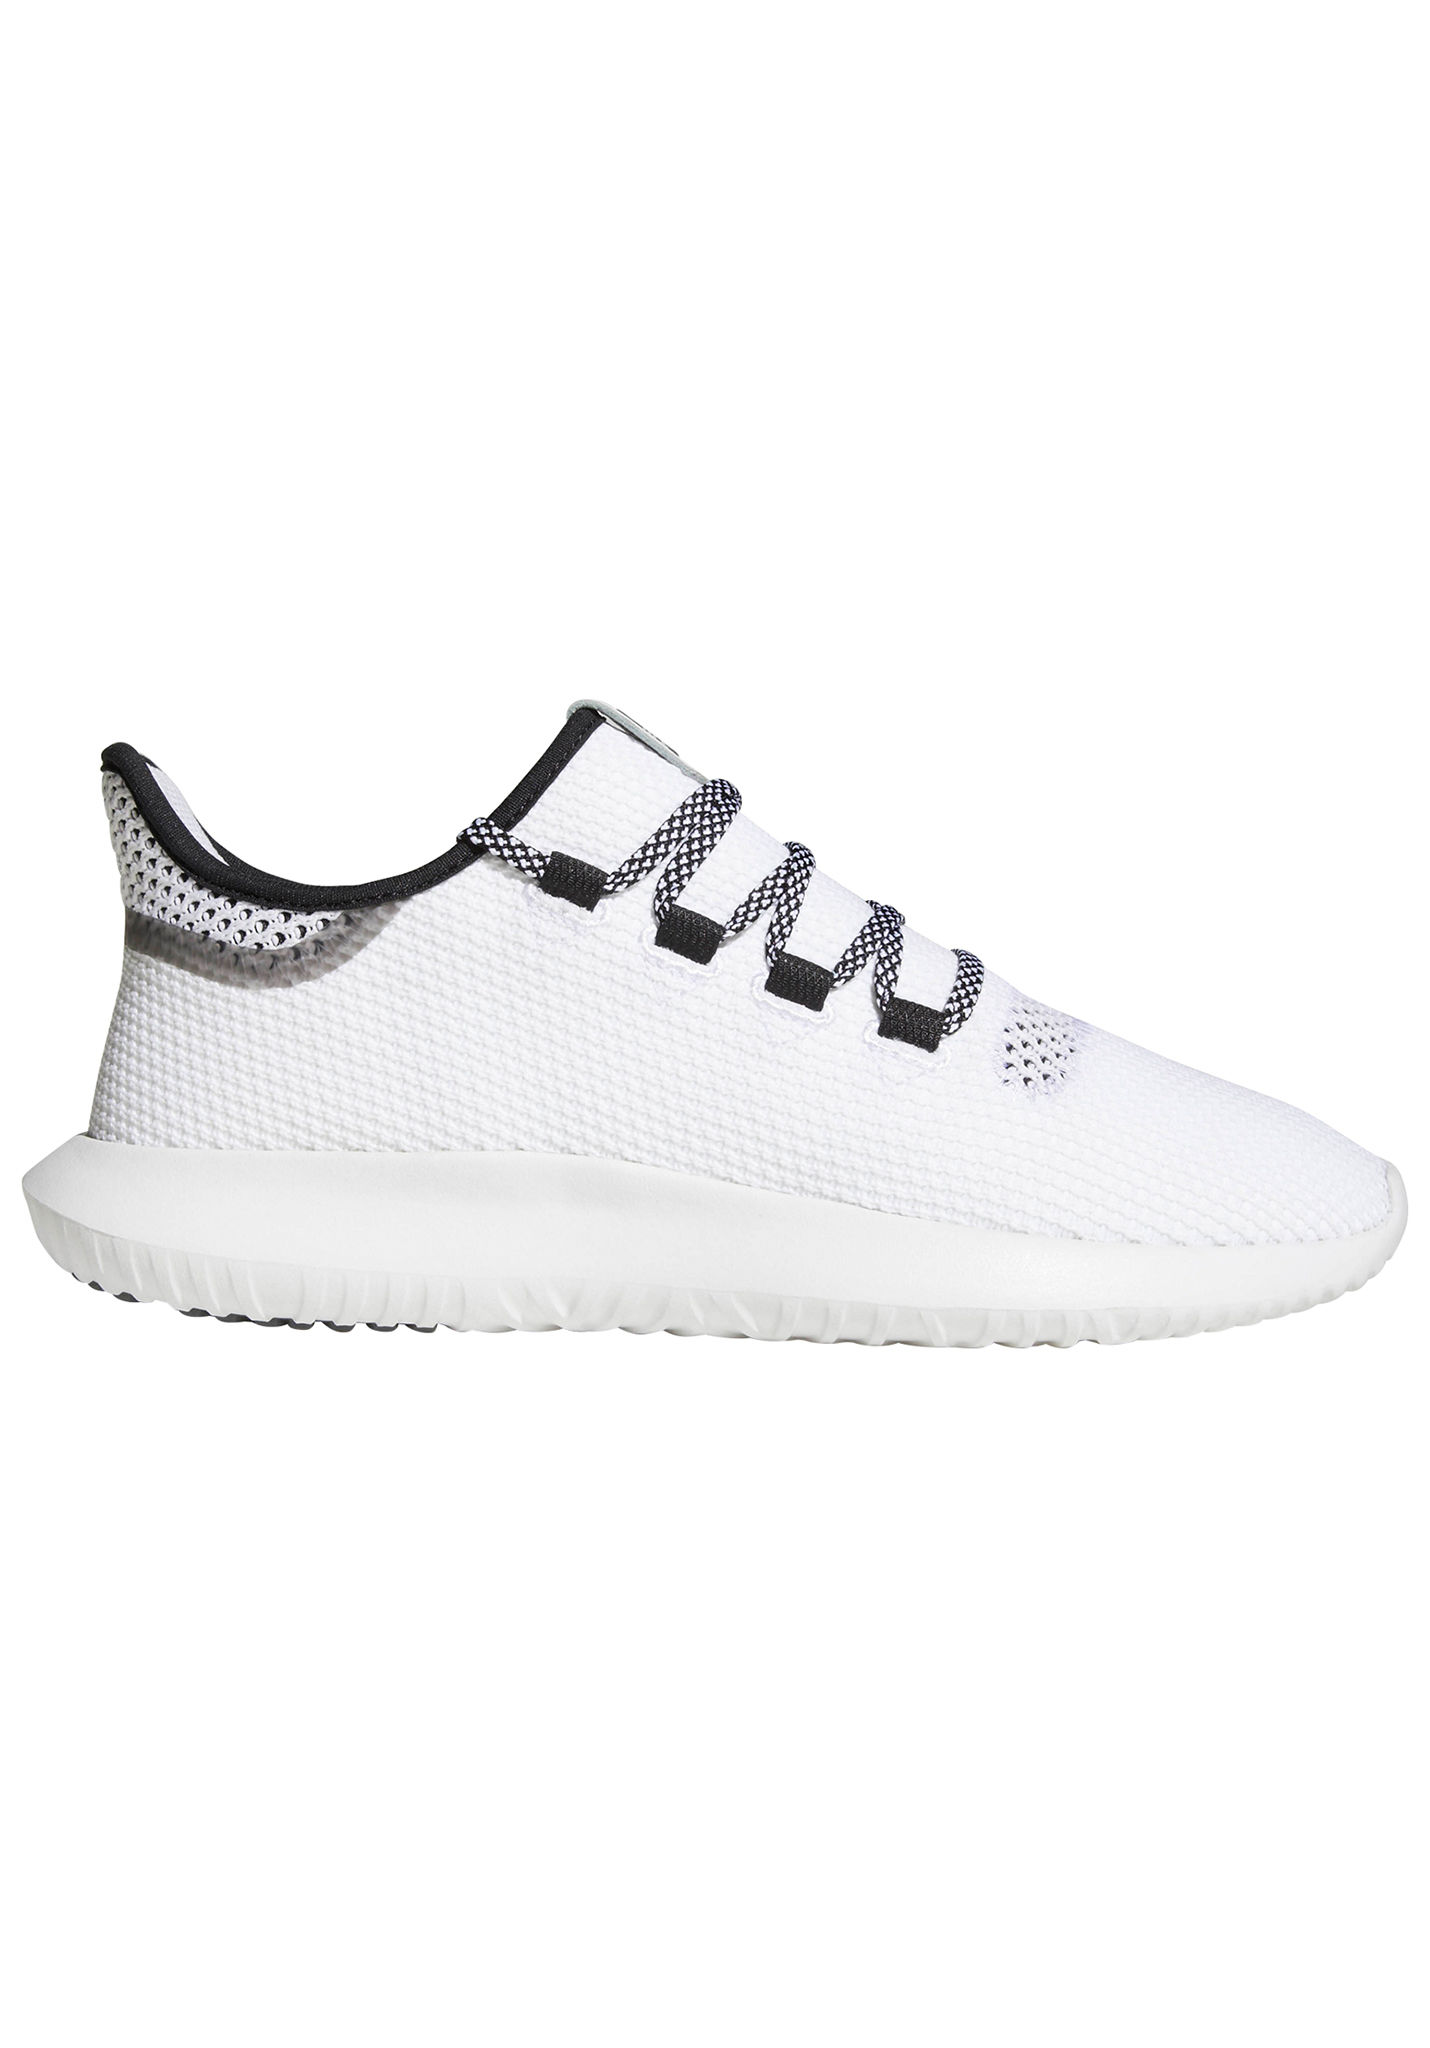 buy popular 43e51 0942f ADIDAS ORIGINALS Tubular Shadow Ck - Baskets pour Homme - Blanc - Planet  Sports